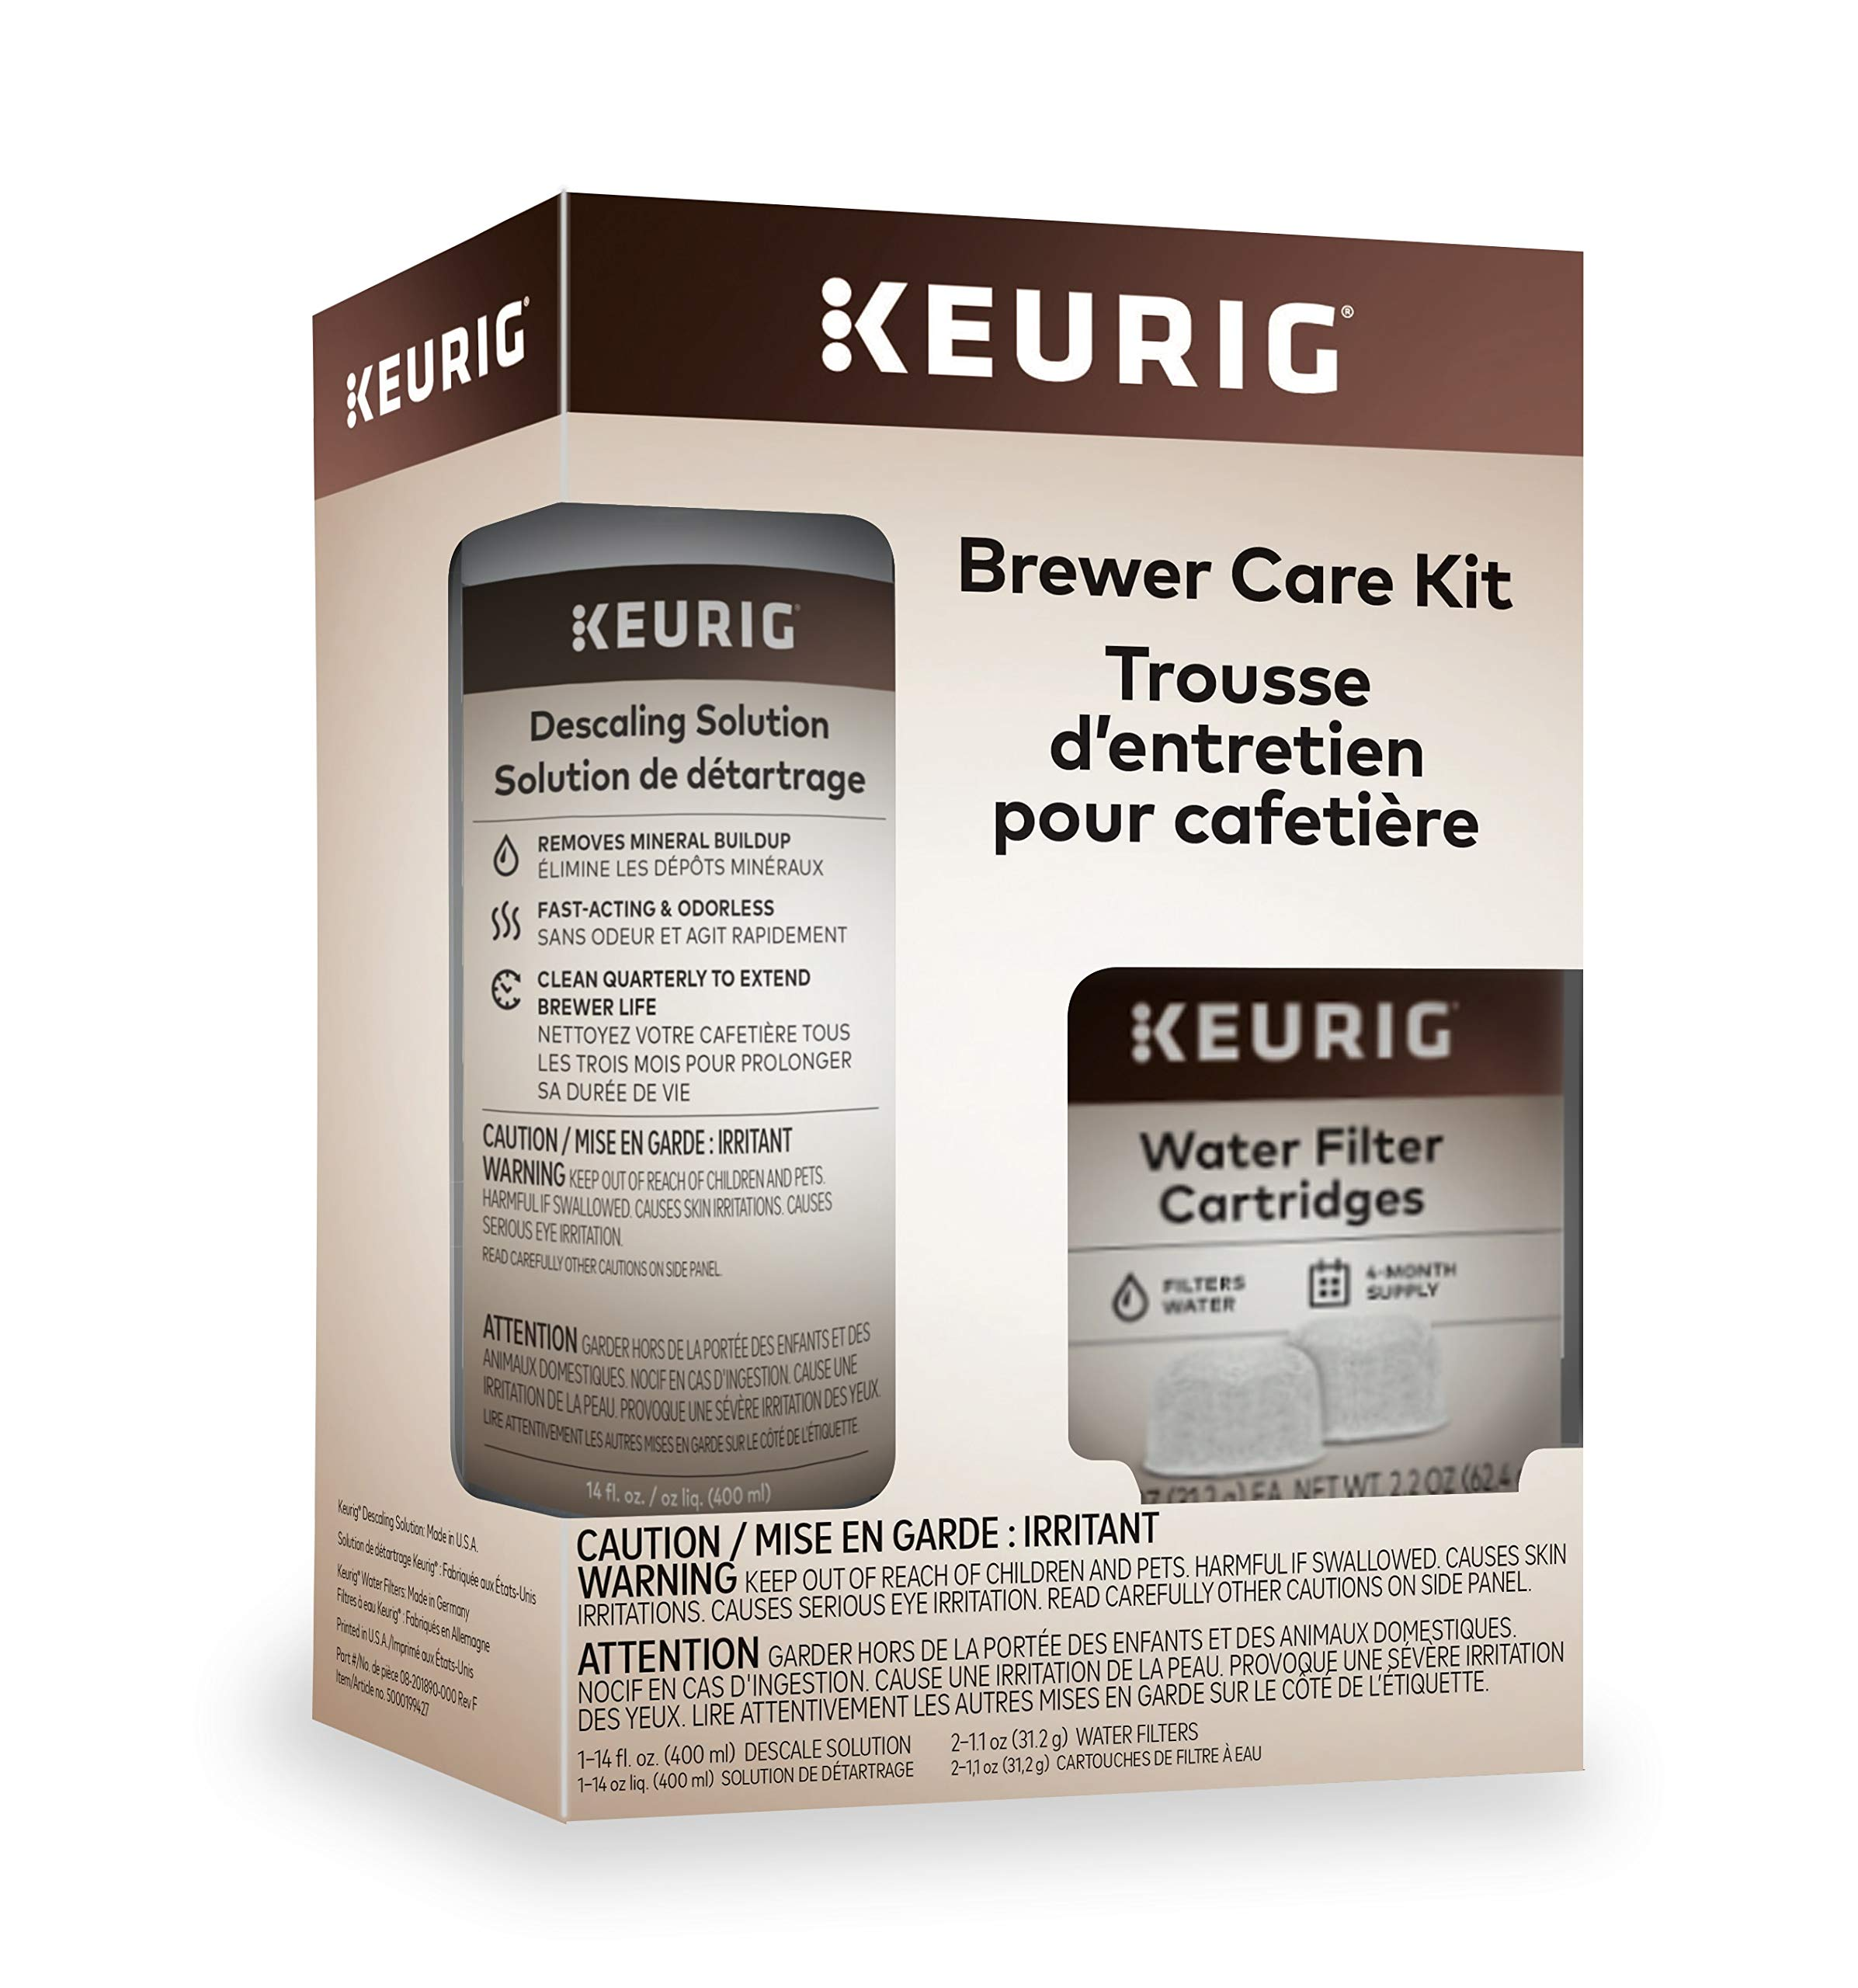 Keurig Brewer Care Kit with Descaling Solution and 2 Water Filter Cartridges, Compatible With All Keurig 2.0 and 1.0 K-Cup Pod Coffee Makers by Keurig (Image #2)